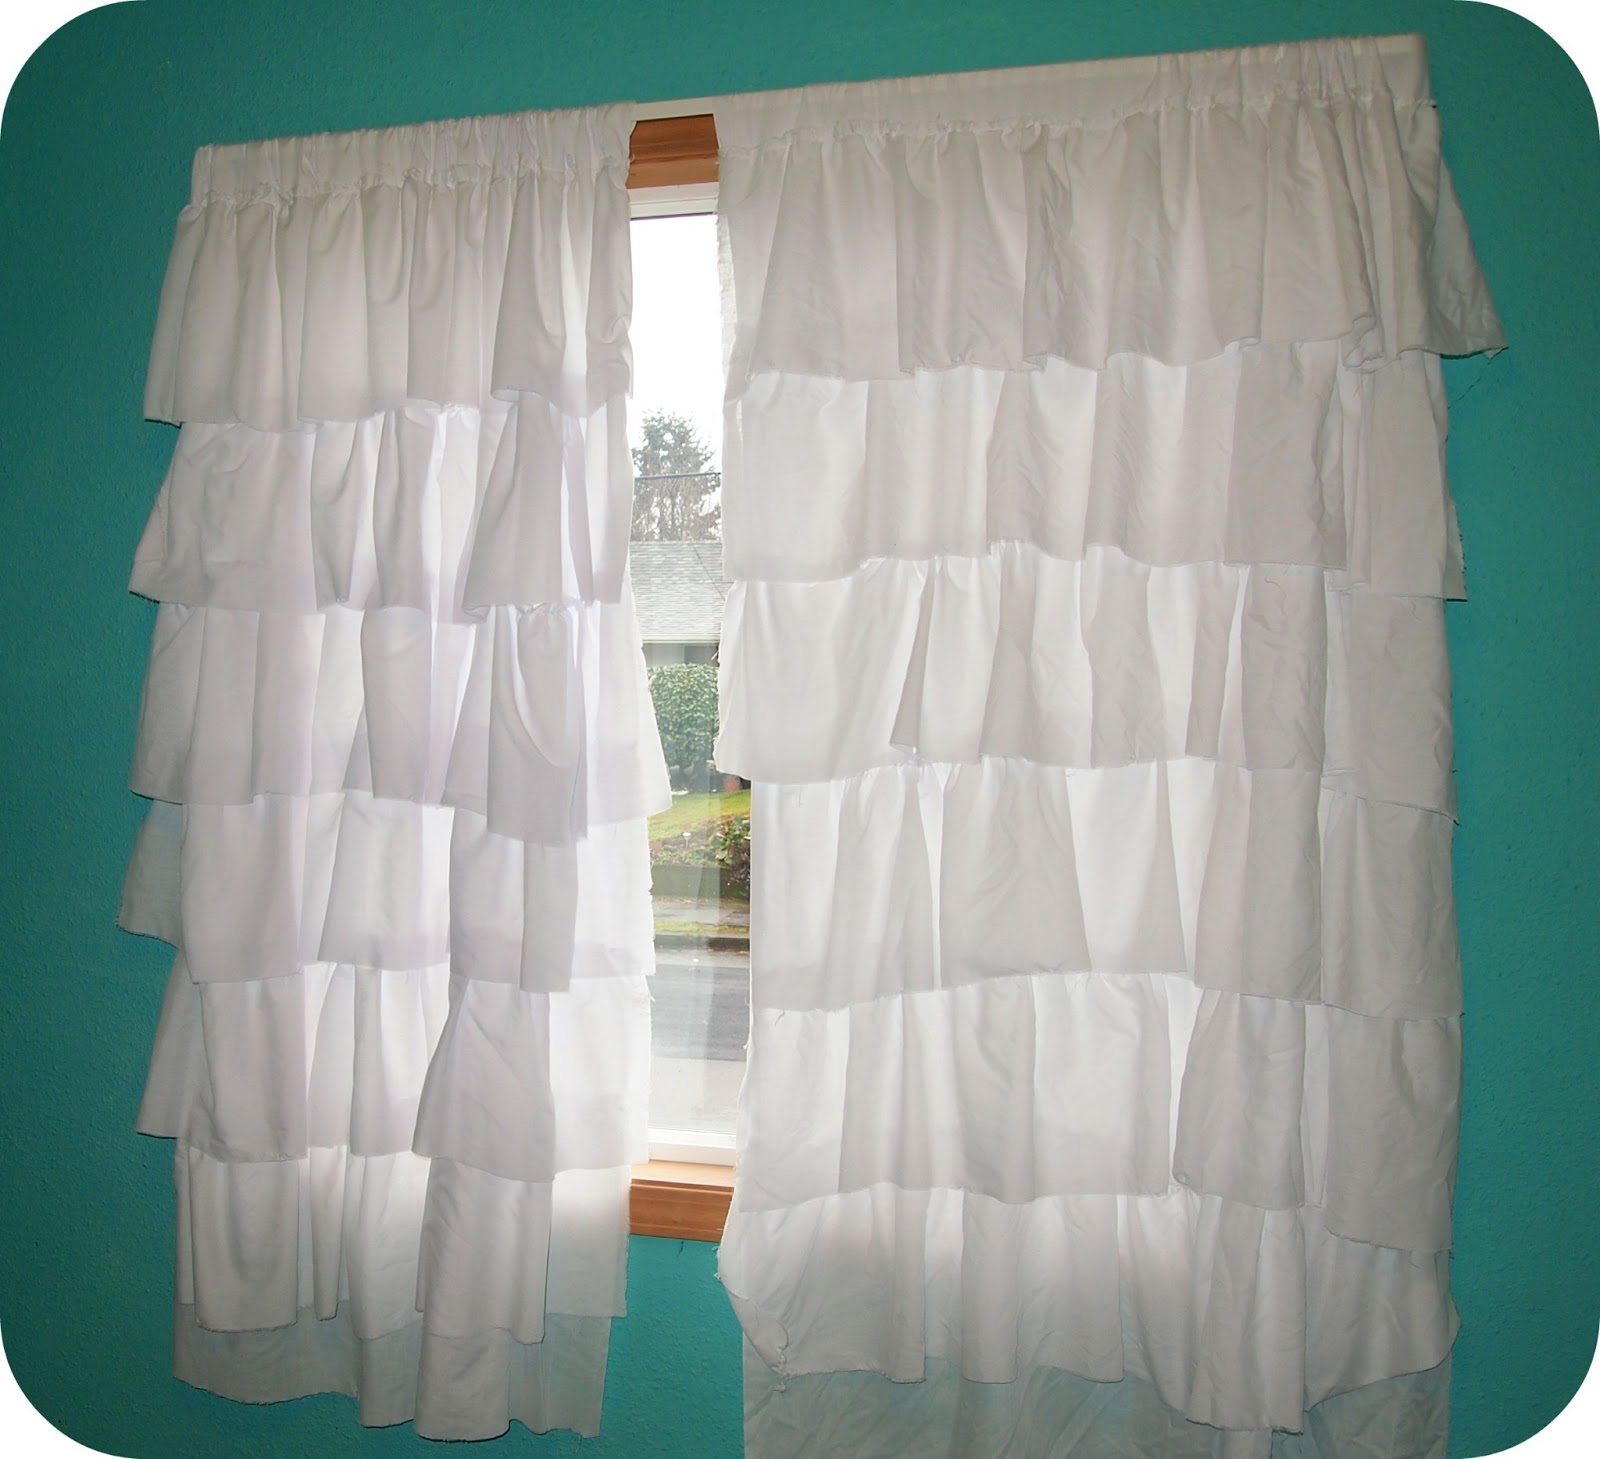 Ruffled curtains and also balloon curtains and also white sheer curtains and also curtain panels and also cheap curtain